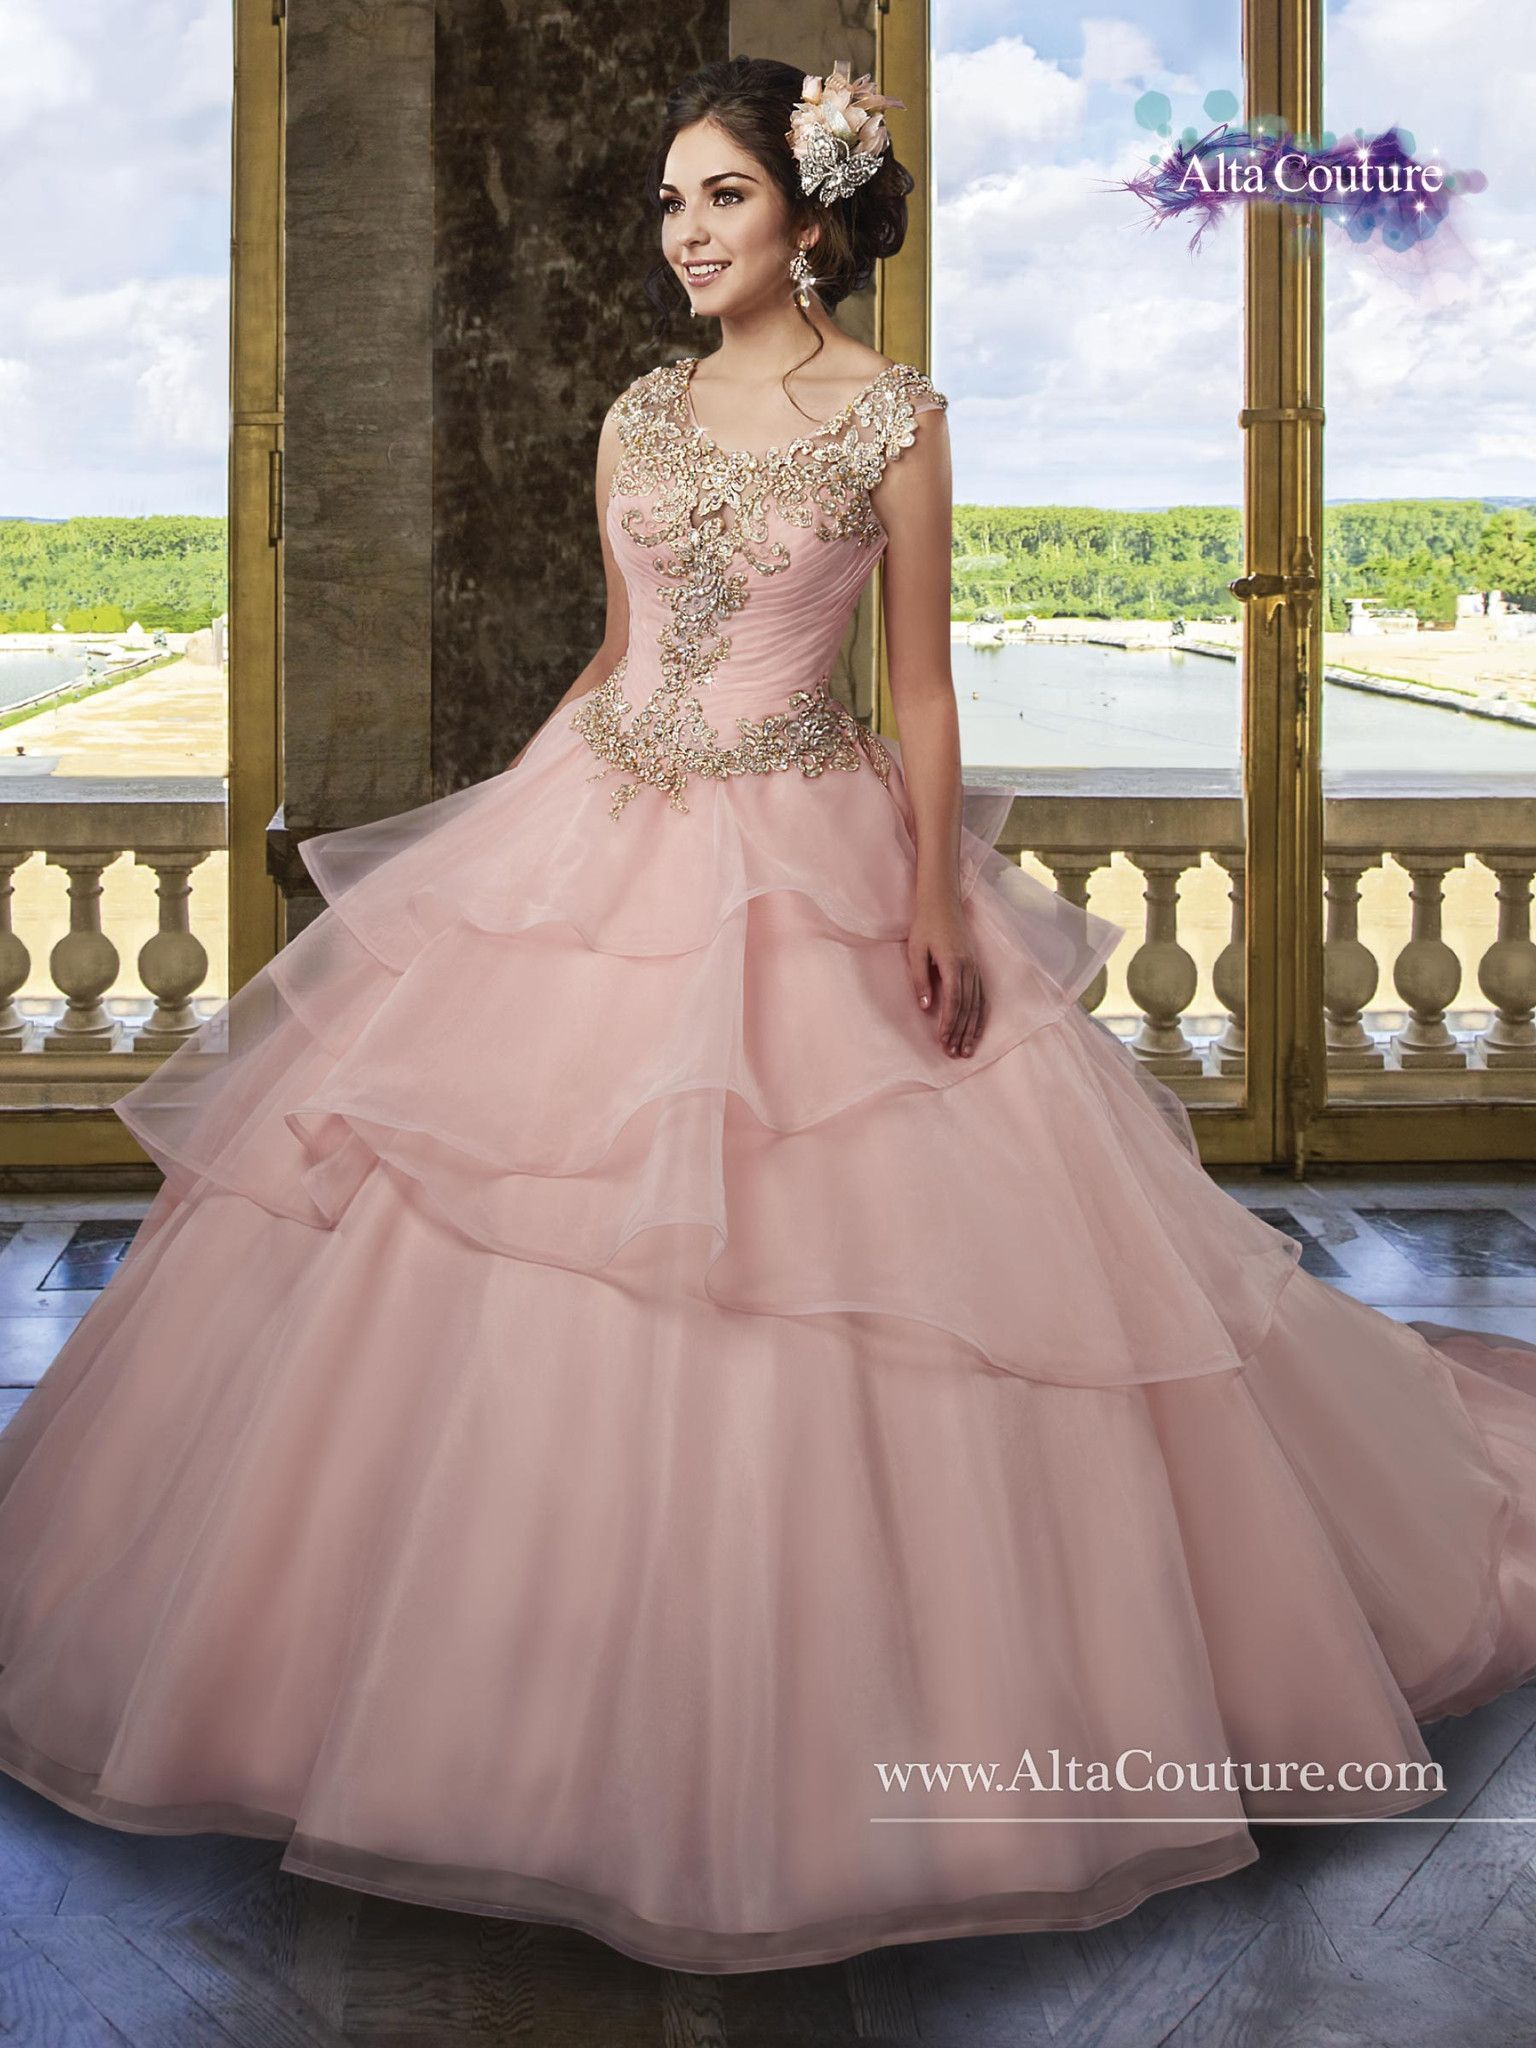 Maryus bridal alta couture quinceanera dress style t sweet